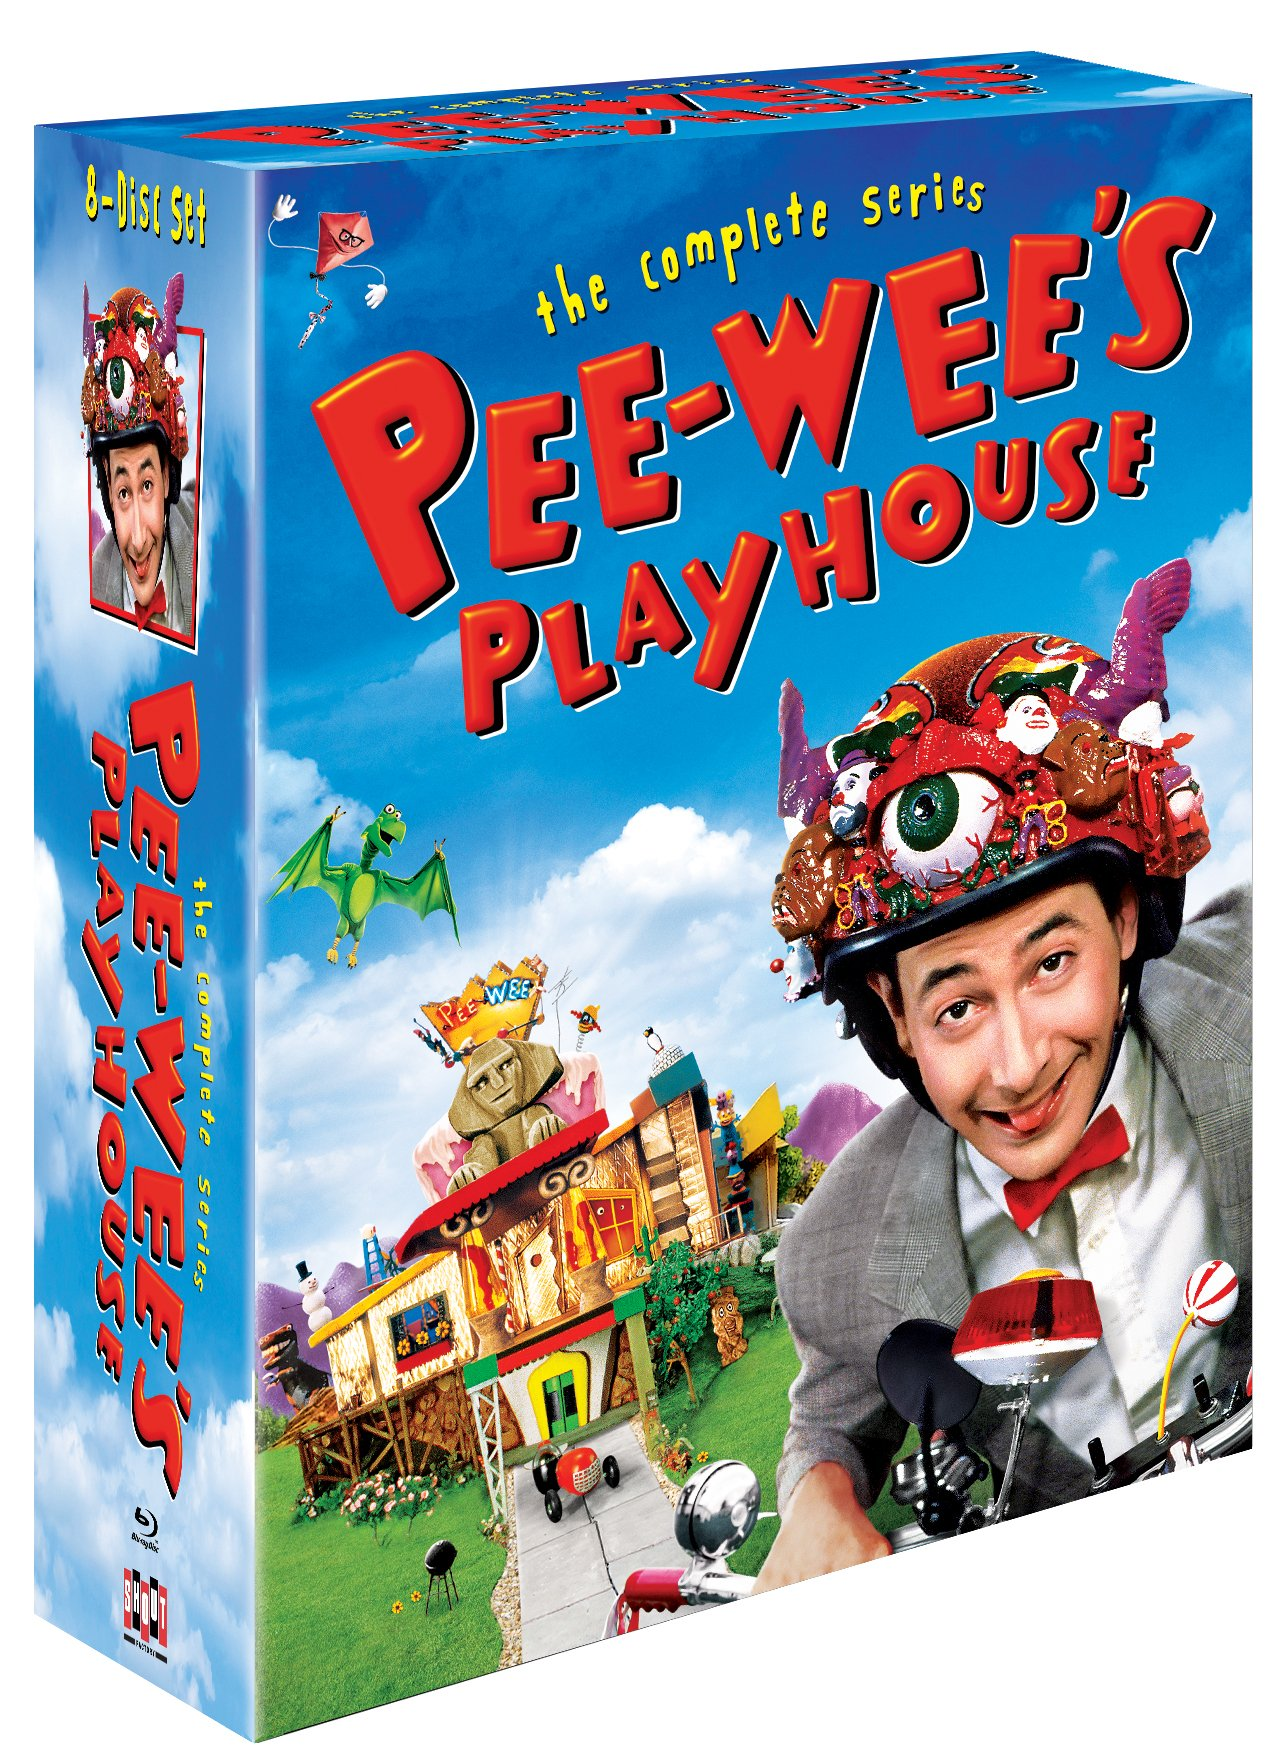 Pee-wee's Playhouse: The Complete Series [Blu-ray] by CINEDIGM - UNI DIST CORP